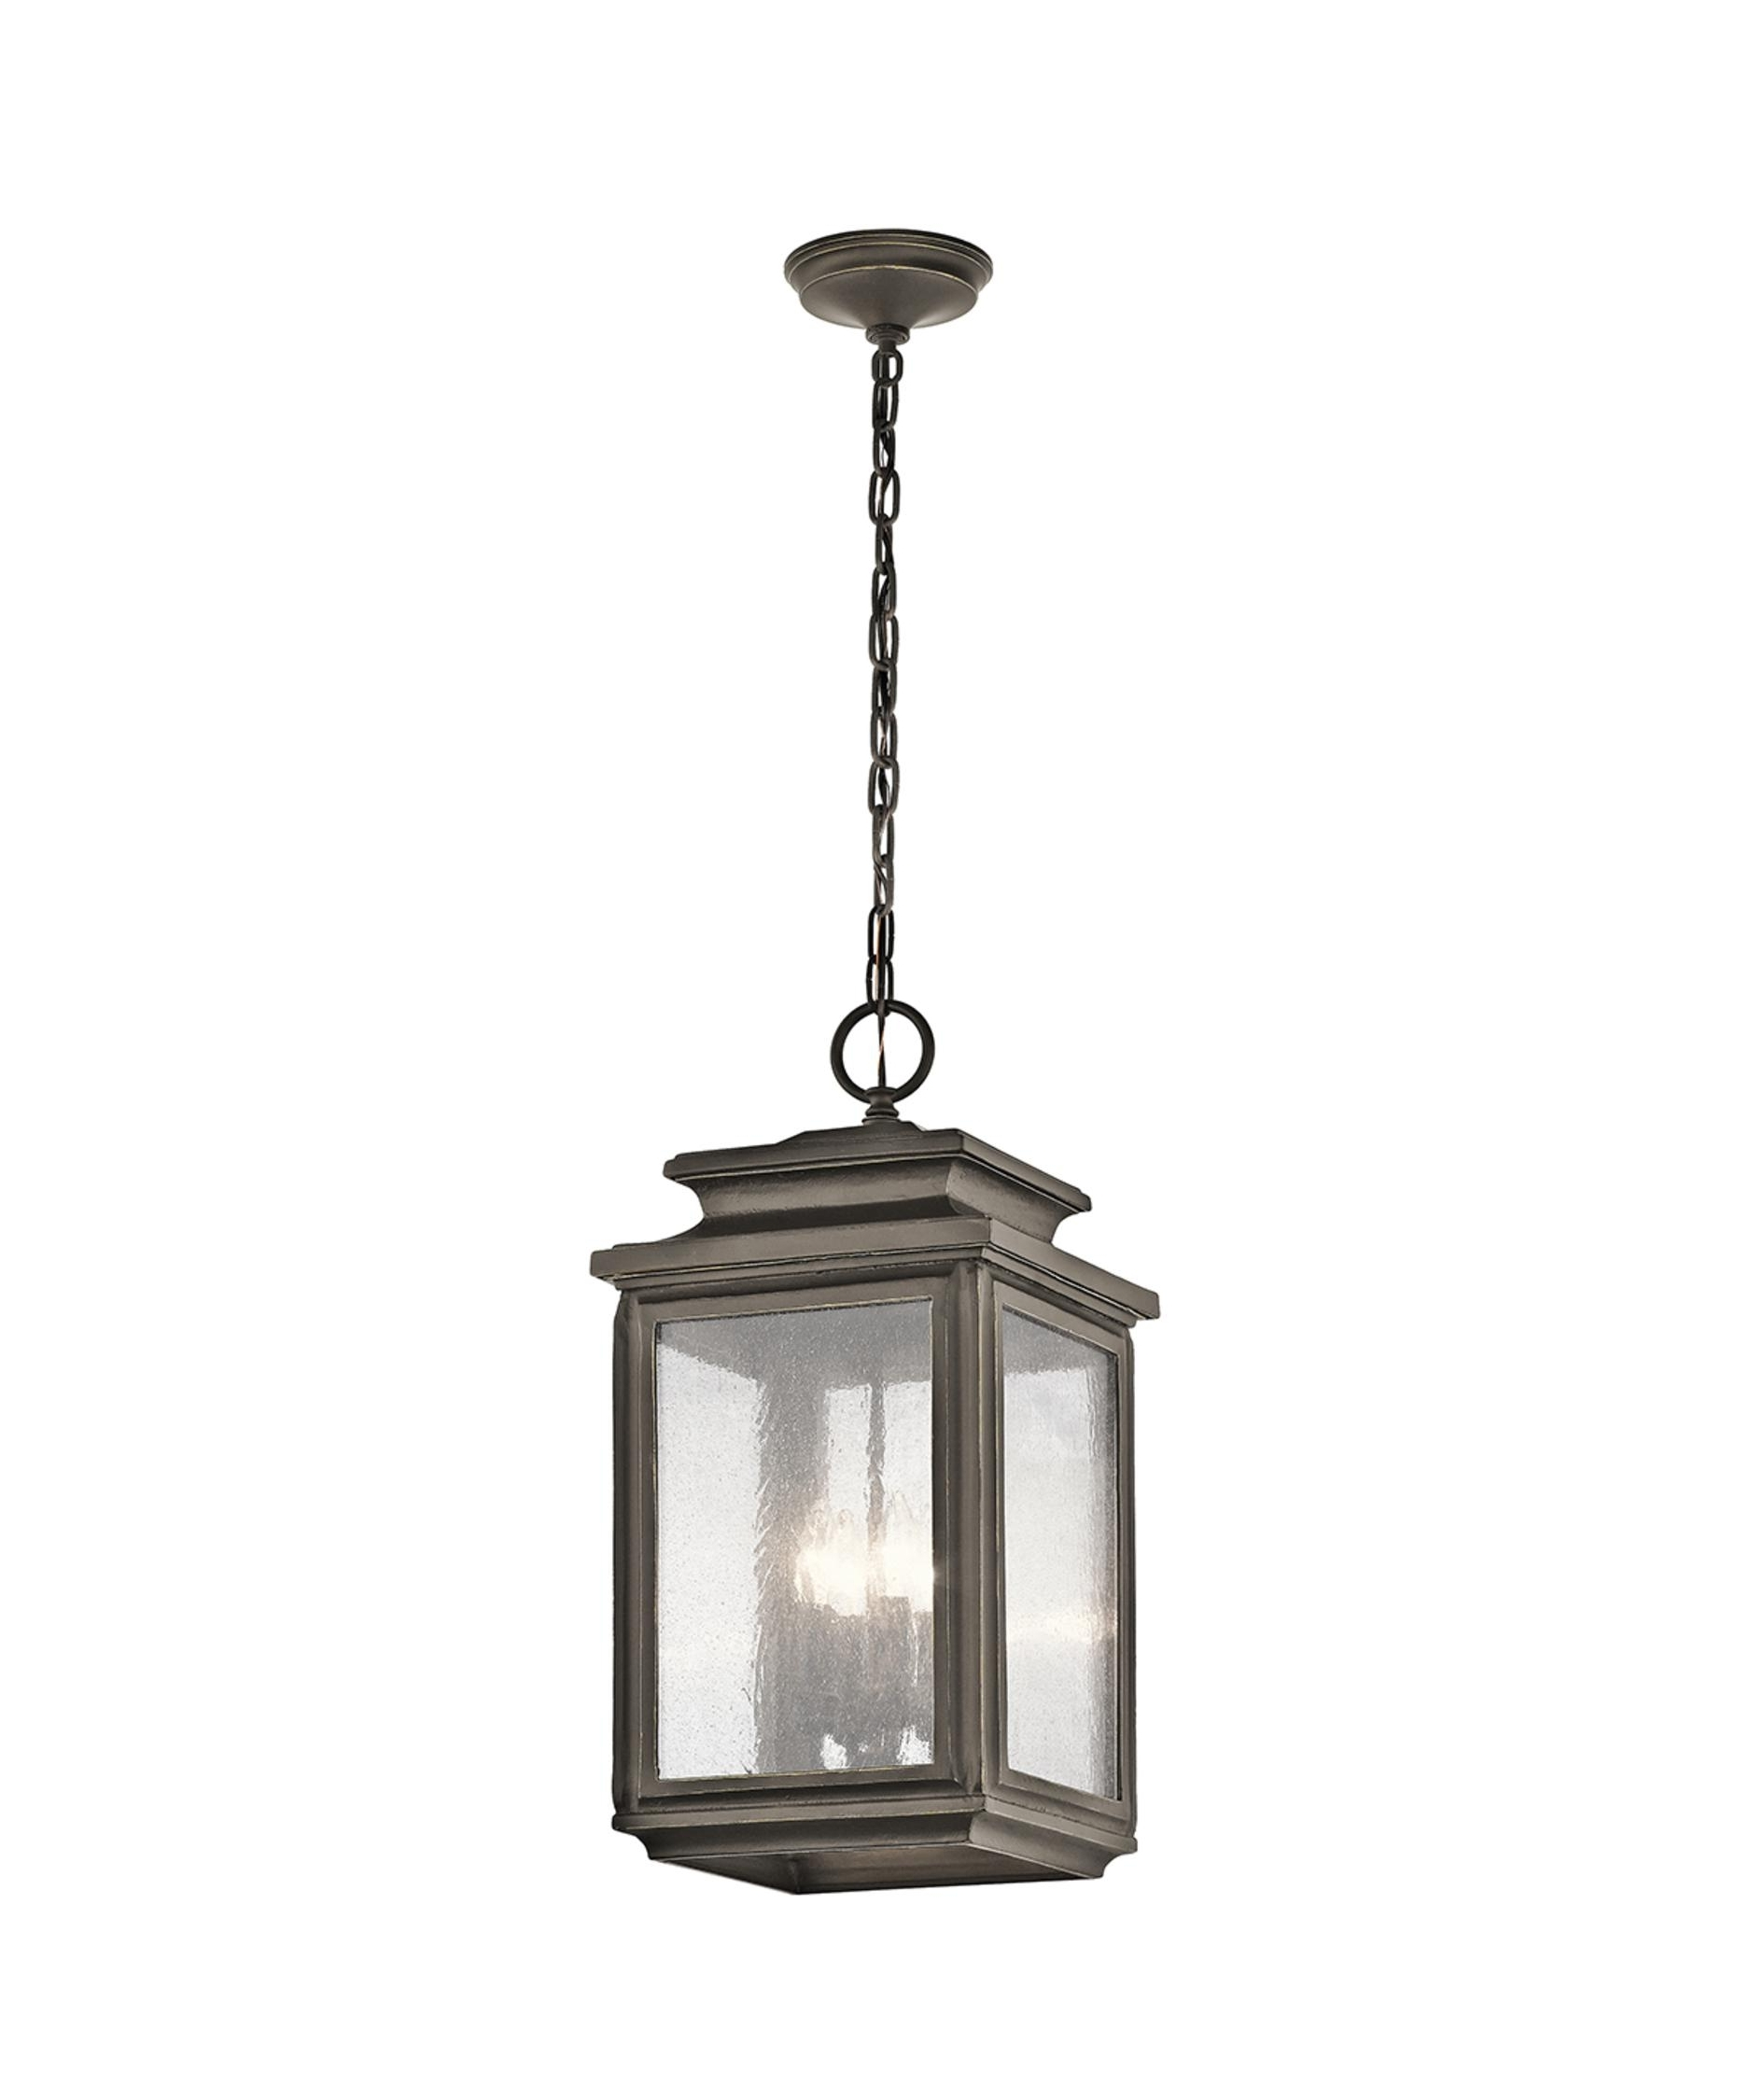 Kichler 49505 Wiscombe Park 11 Inch Wide 4 Light Outdoor Hanging Intended For Well Liked Italian Outdoor Lanterns (View 12 of 20)